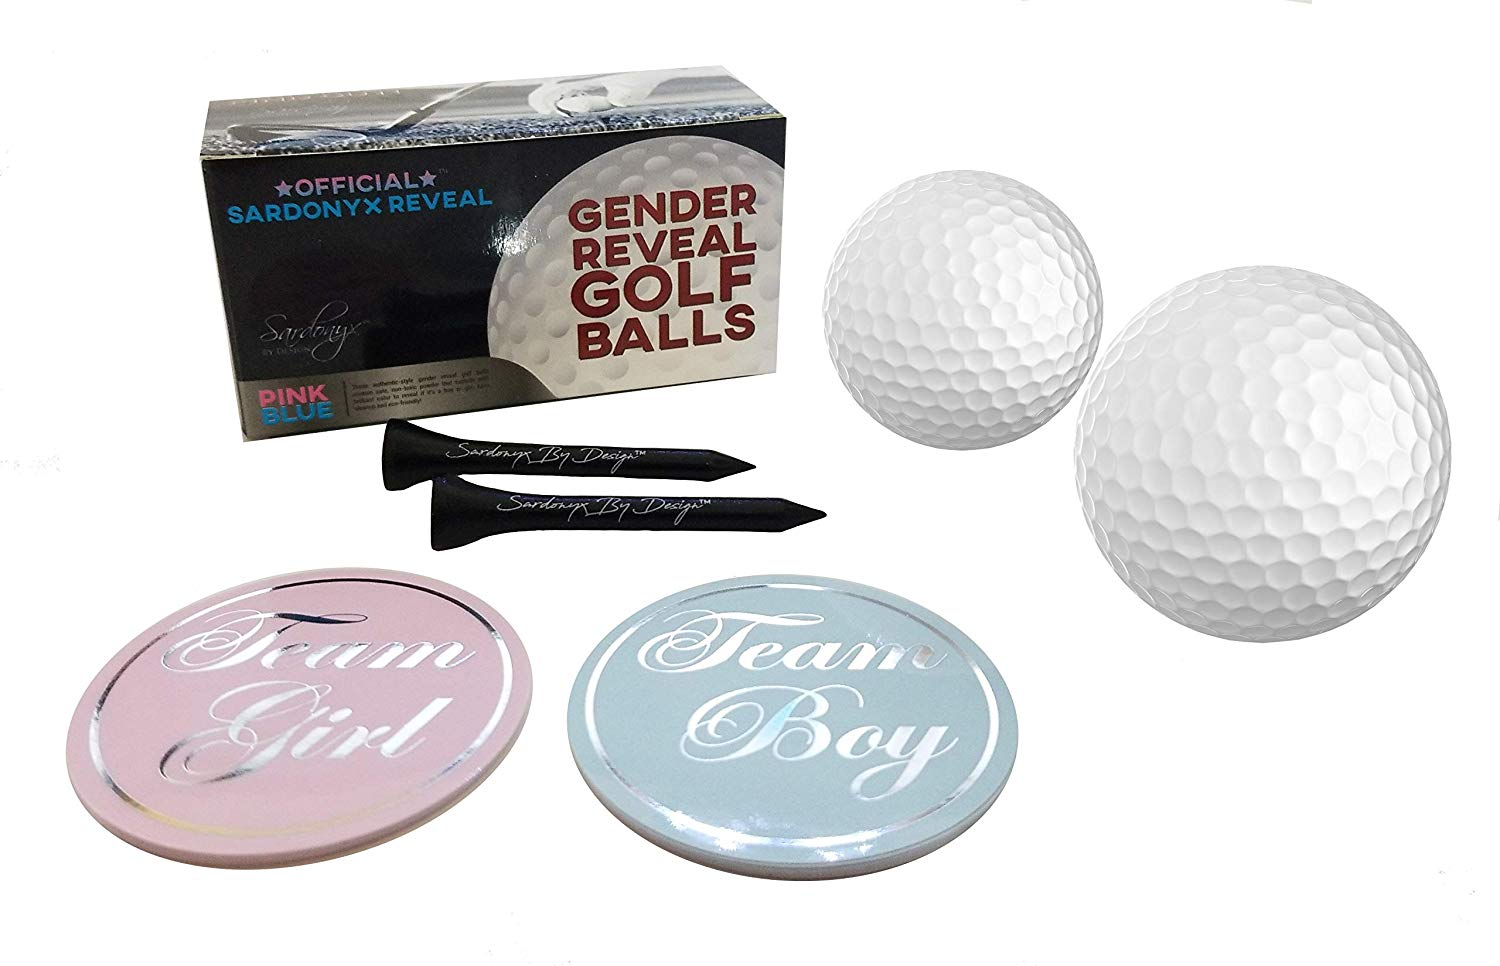 Gender Reveal Exploding Golf Balls with Vibrant Pink and Blue Powder | Complete 24 Piece Set! + Bonus Golf Tees & 20 Team Stickers 10 Team Pink (Girl) 10 Team Blue (Boy)